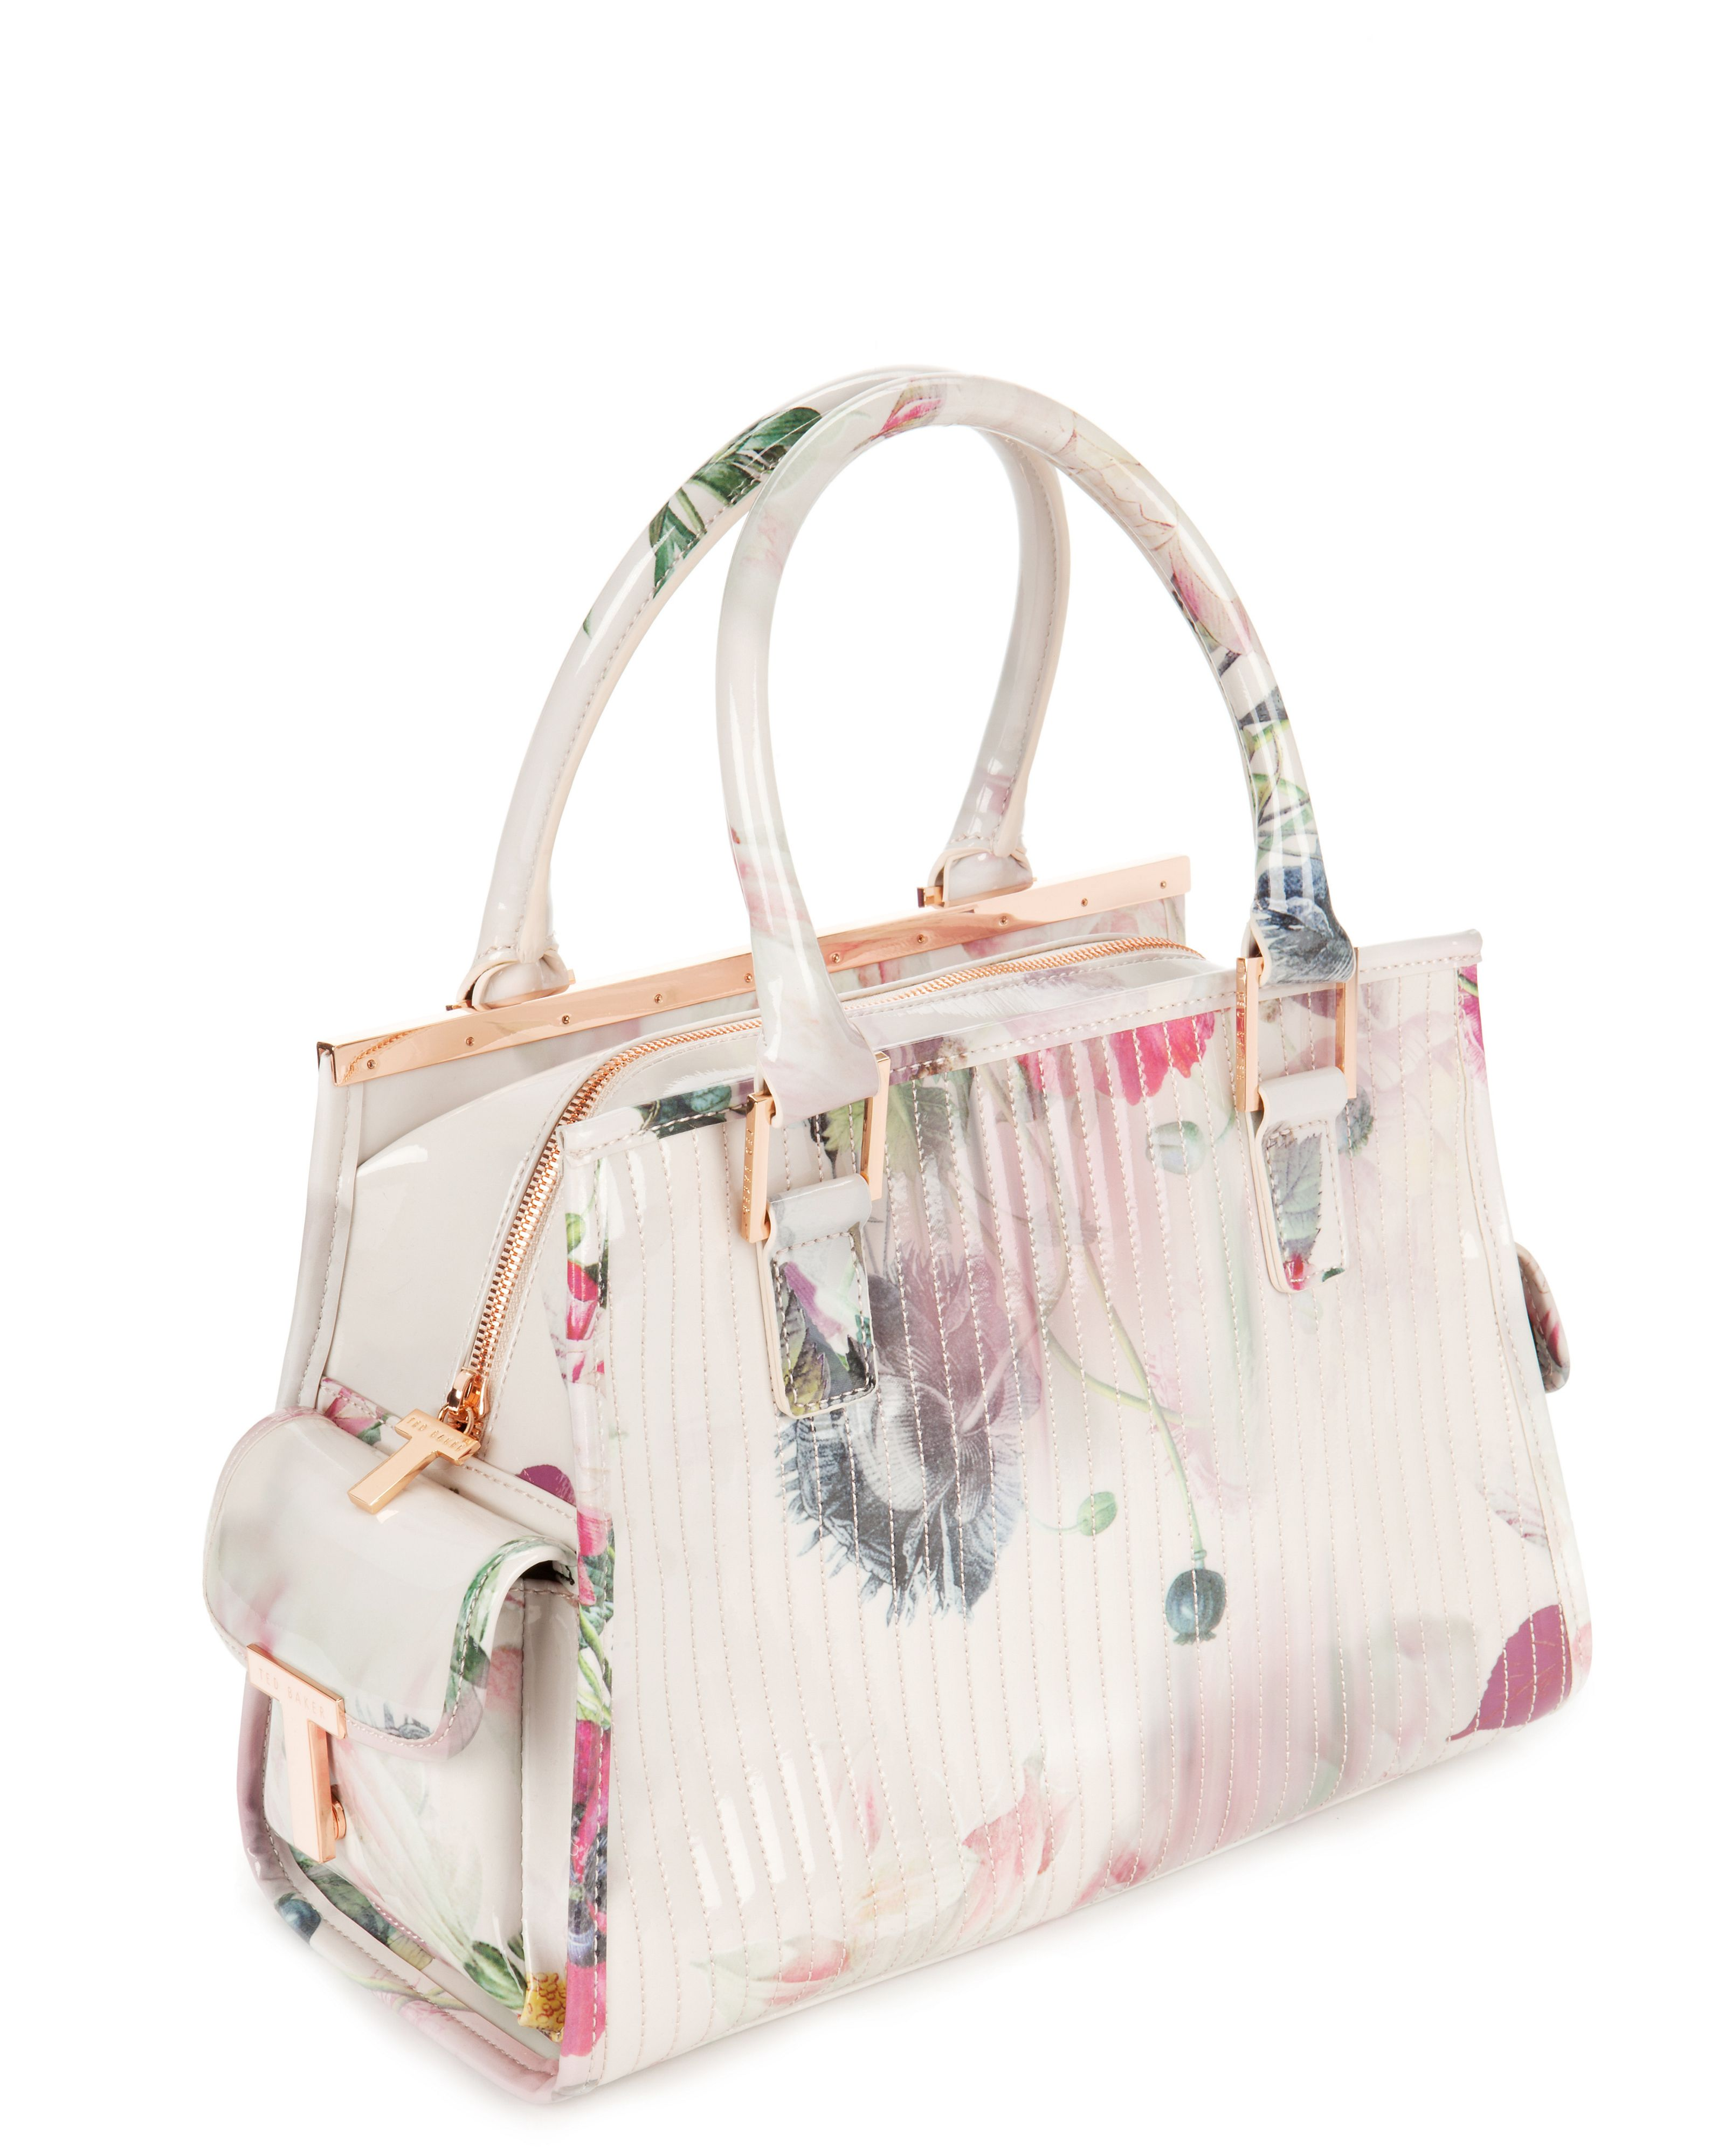 Rasia opulent bloom tote bag